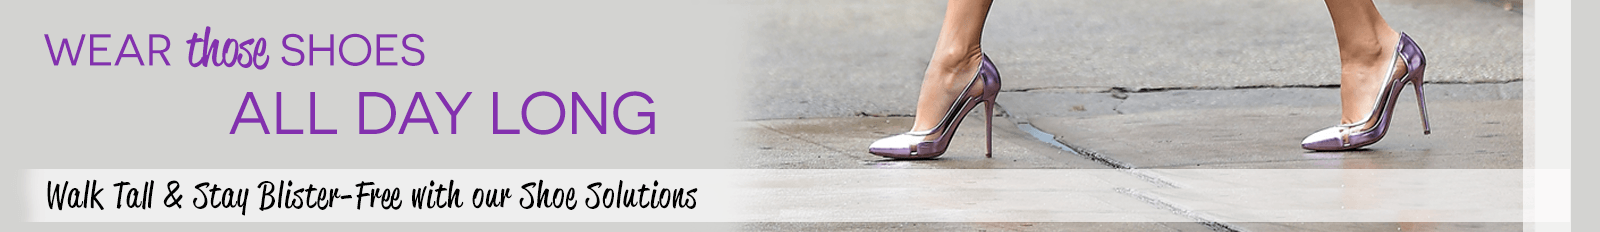 shoes-banner copy